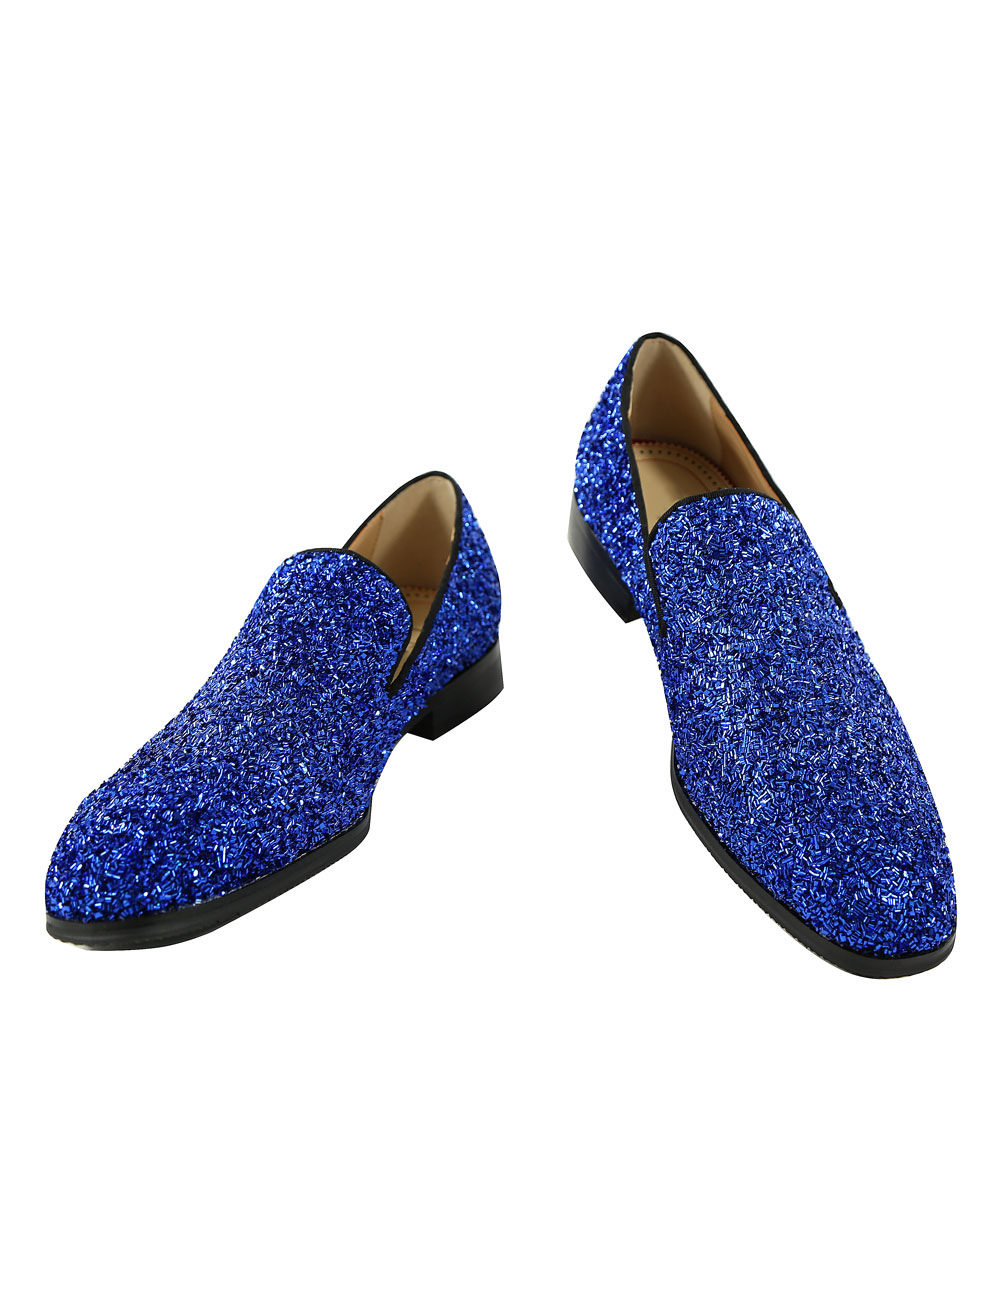 Men Blue Loafers 2018 Prom Shoes Glitter Round Toe Slip Ons Dress Shoes